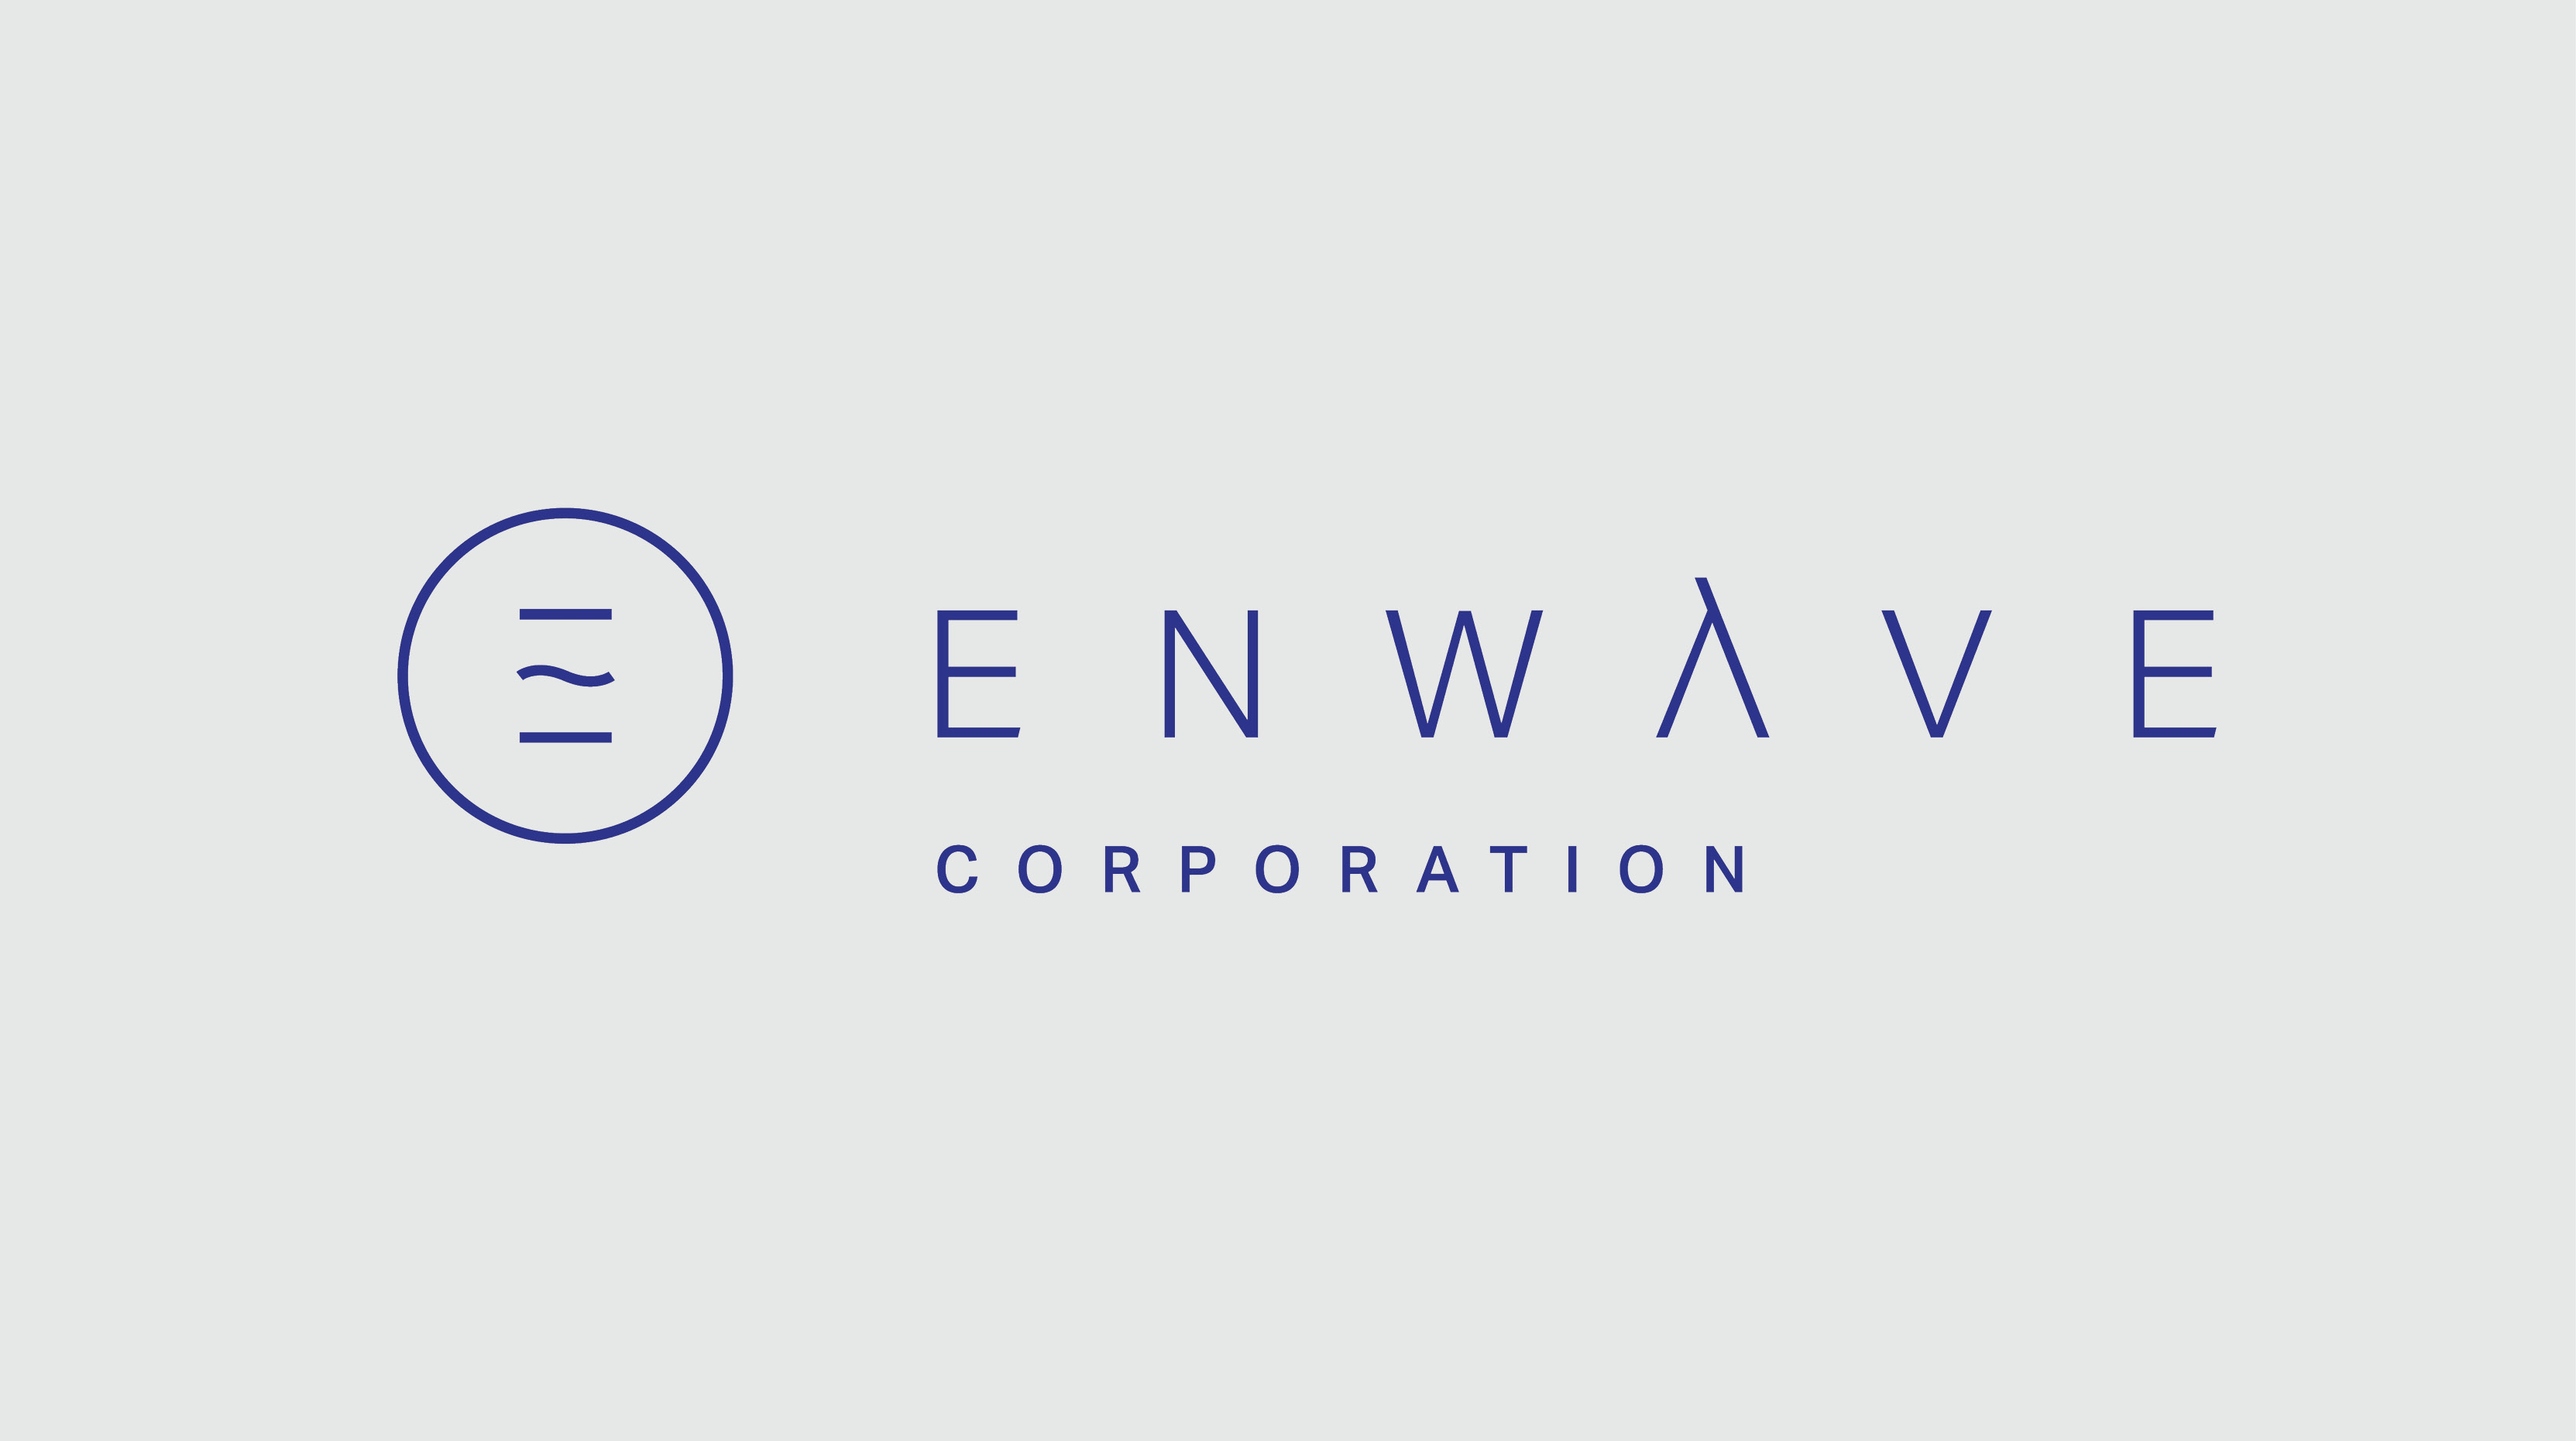 EnWave Announces Fourth Quarter and 2020 Annual Results